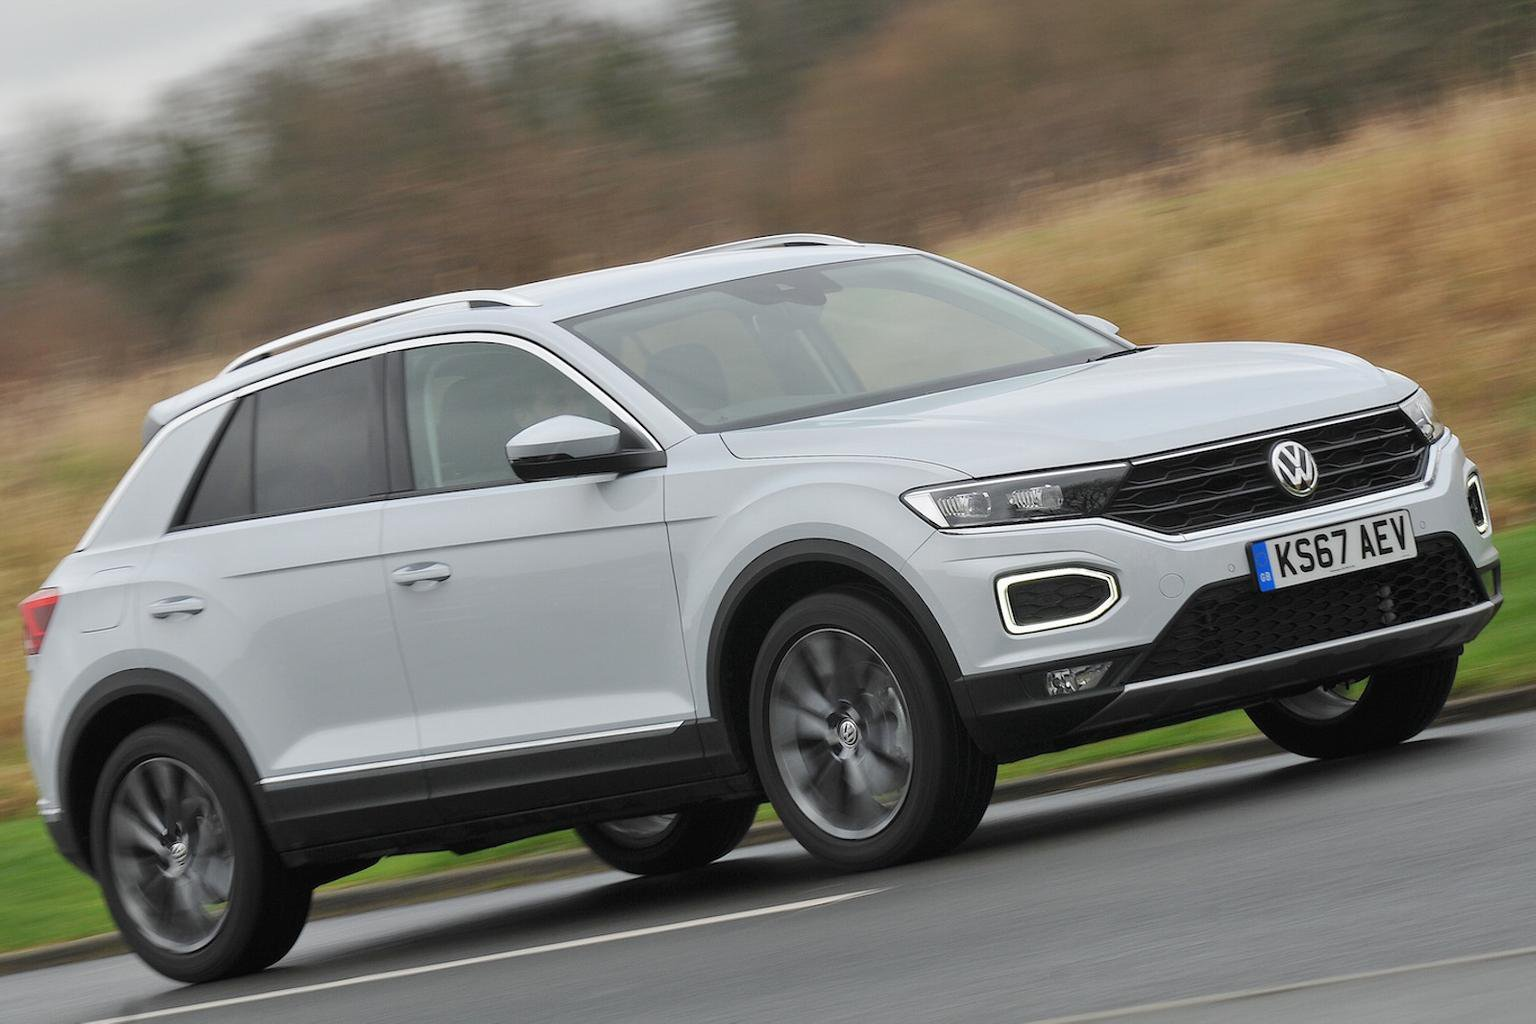 2018 Volkswagen T-Roc 2.0 TDI 150 4Motion review - verdict